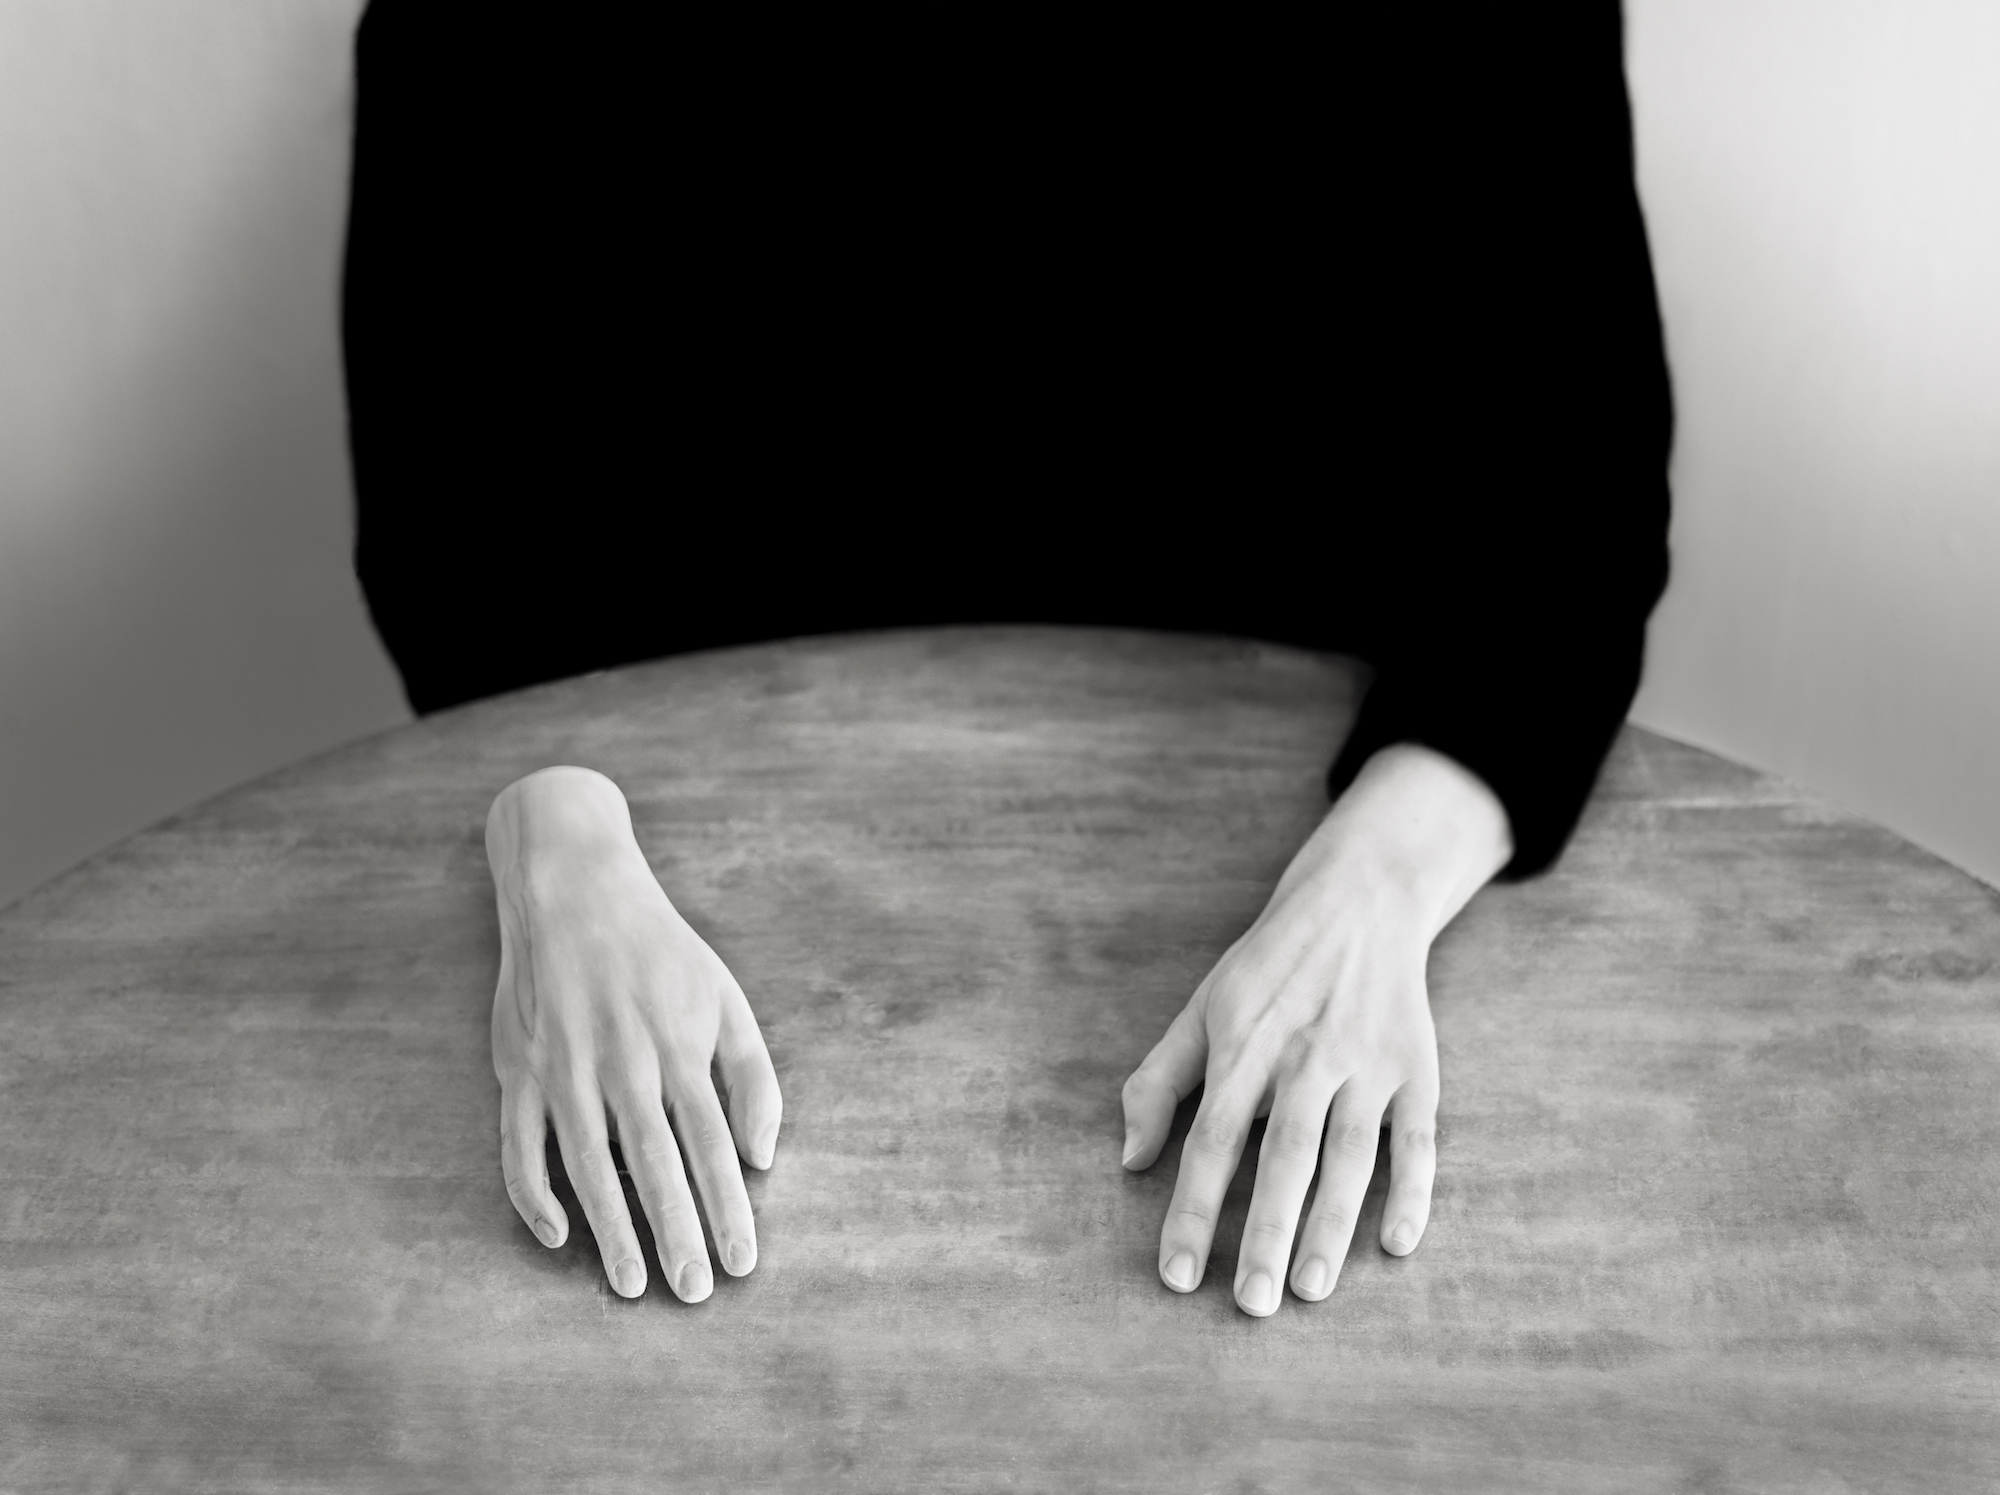 Lovisa Ringborg, The Other Hand, 2020, Silver gelatin print mounted on aluminium, museum glass, walnut frame 52,5 x 69 cm, edition of 5